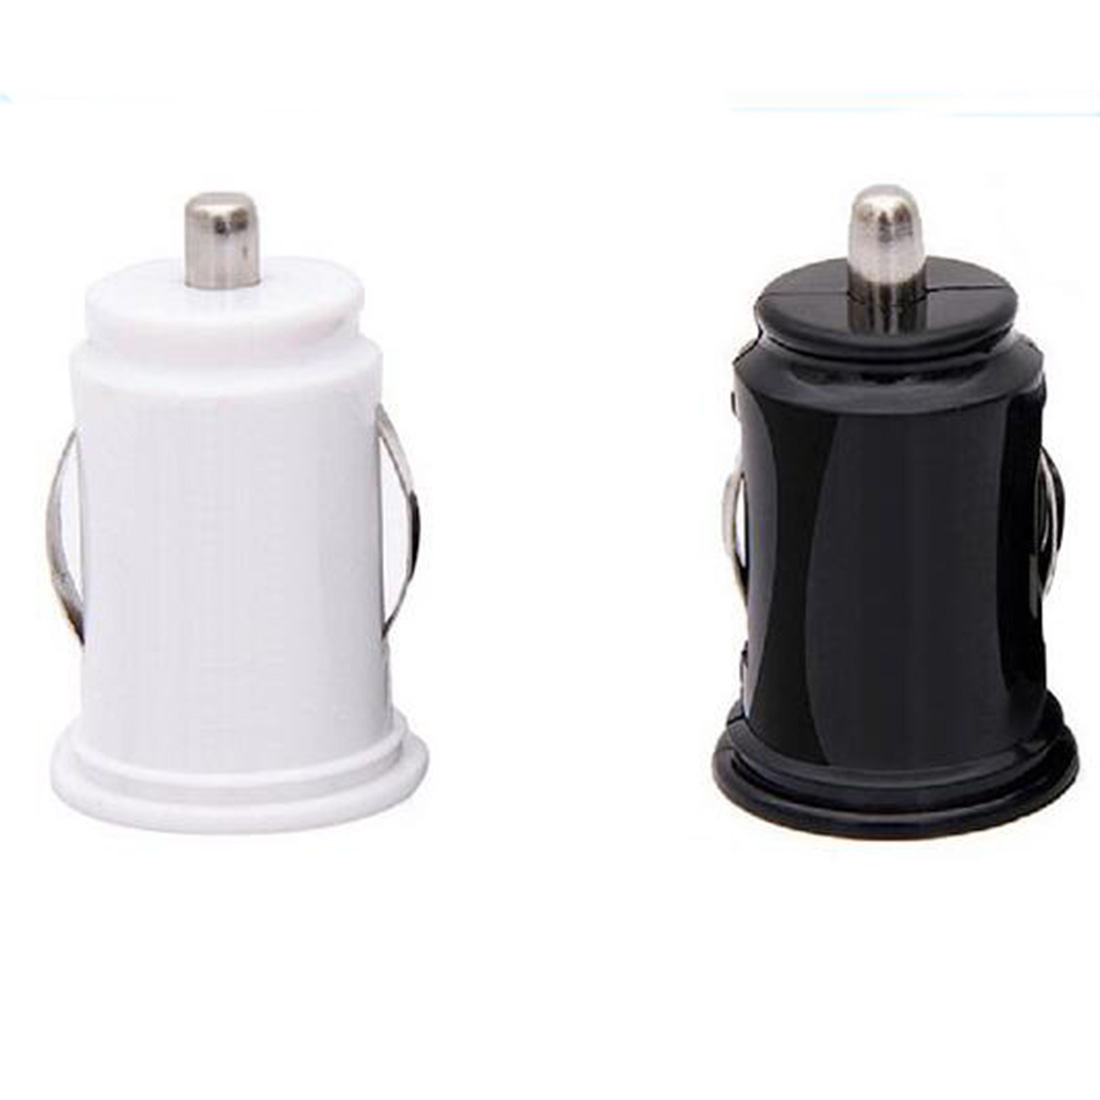 2.1A 5V Dual <font><b>USB</b></font> <font><b>car</b></font> <font><b>charger</b></font> 2 port Cigarette <font><b>Lighter</b></font> Adapter <font><b>Charger</b></font> <font><b>USB</b></font> Power Adapter For all smart phones image